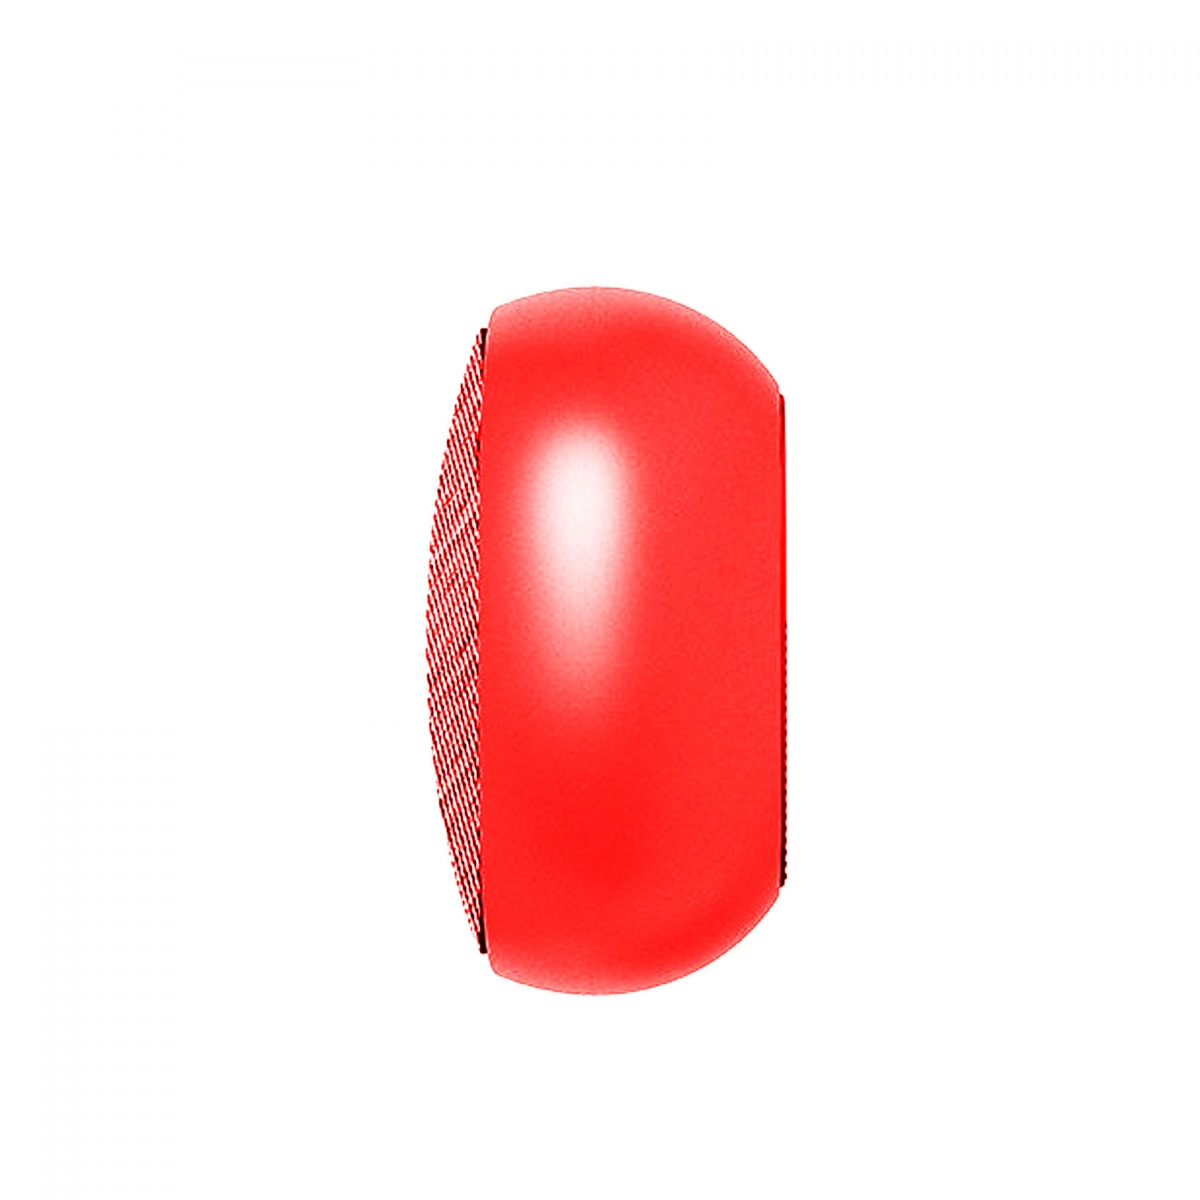 Yoobao M1 Portable Bluetooth Speaker – Red 3